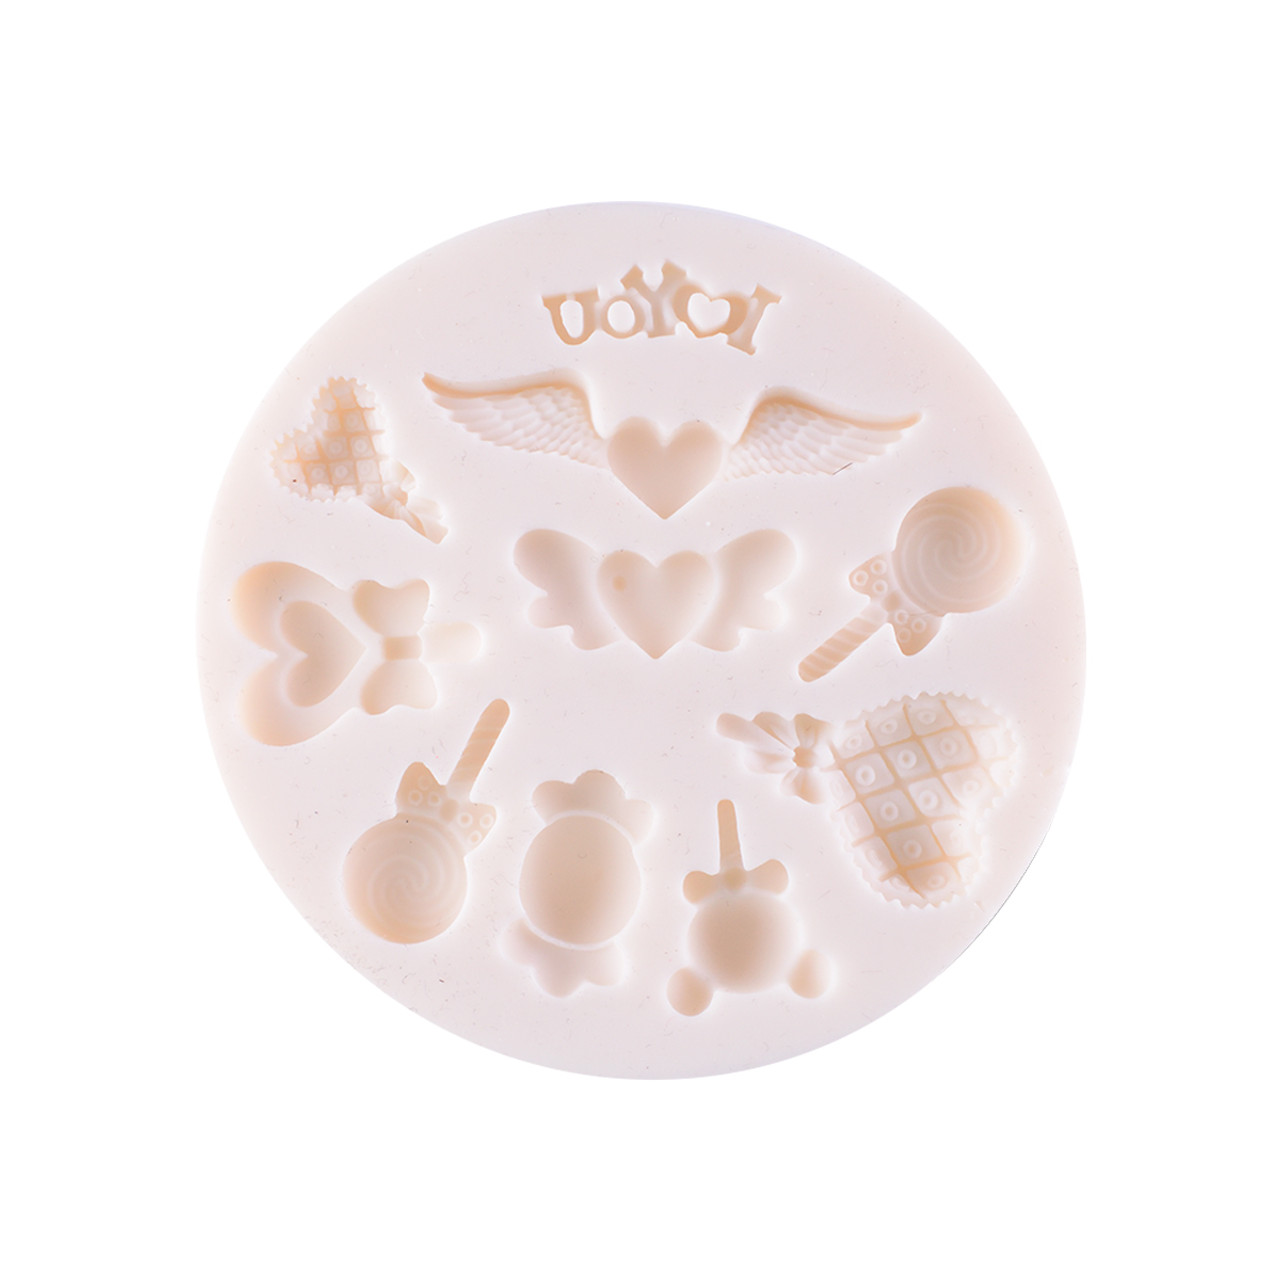 Silicone Mould - Heart & Candy 10 Kinds